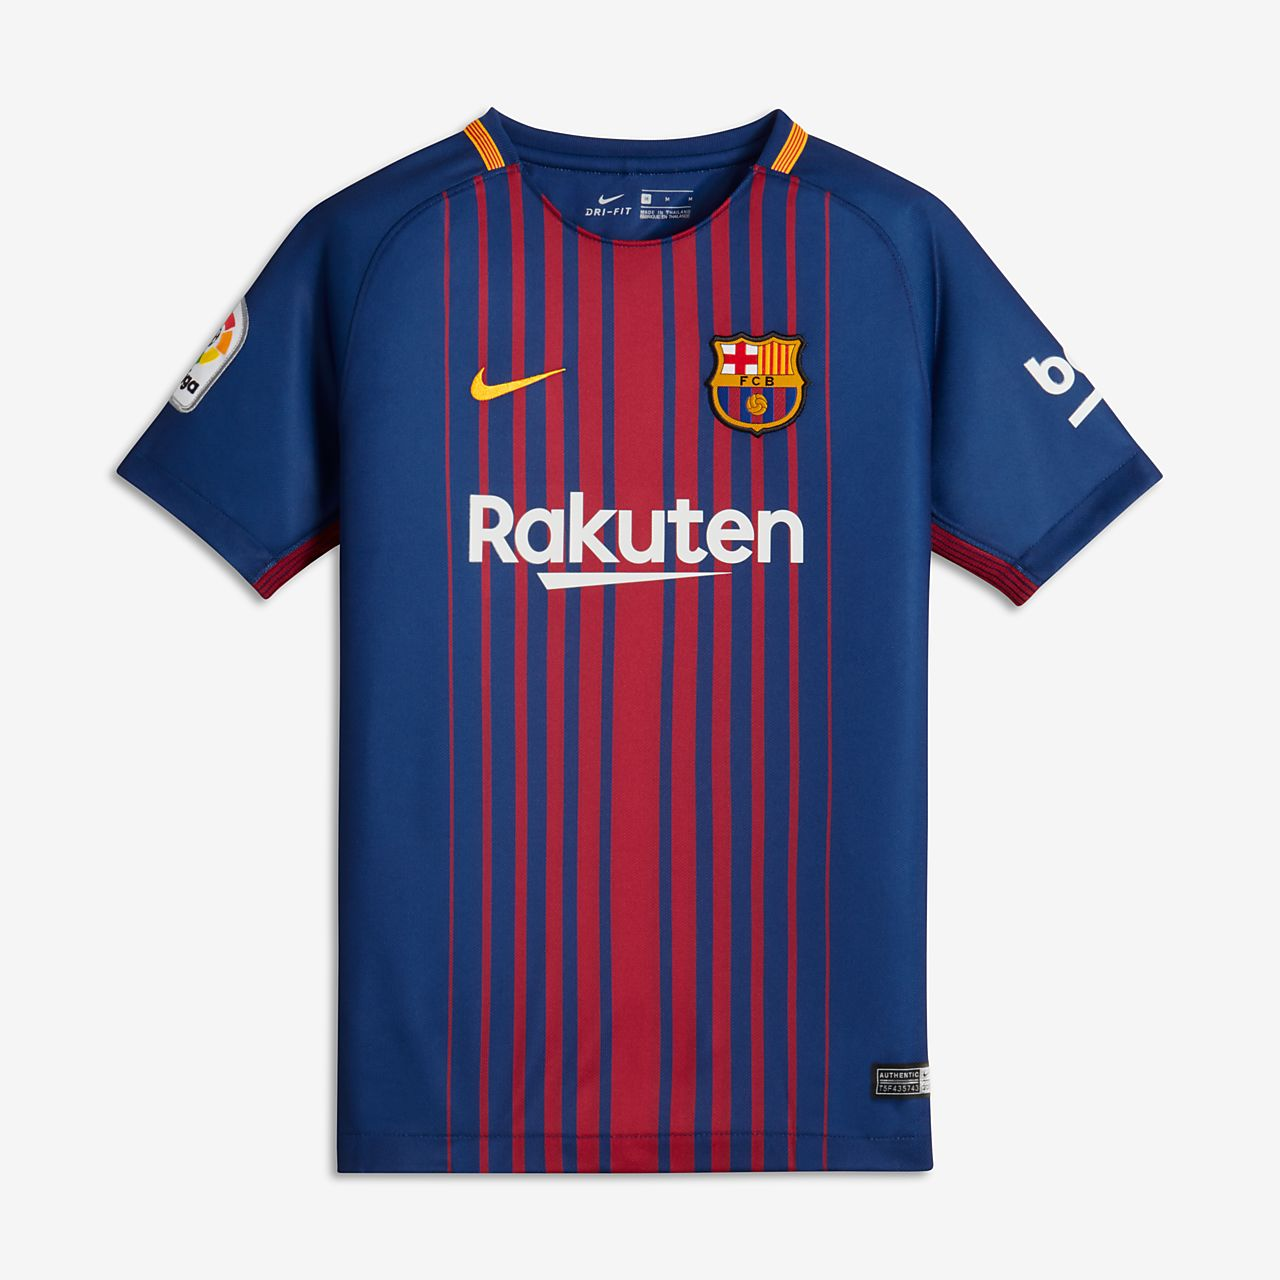 bc0c3906d35 barcelona kids football kit on sale > OFF71% Discounts